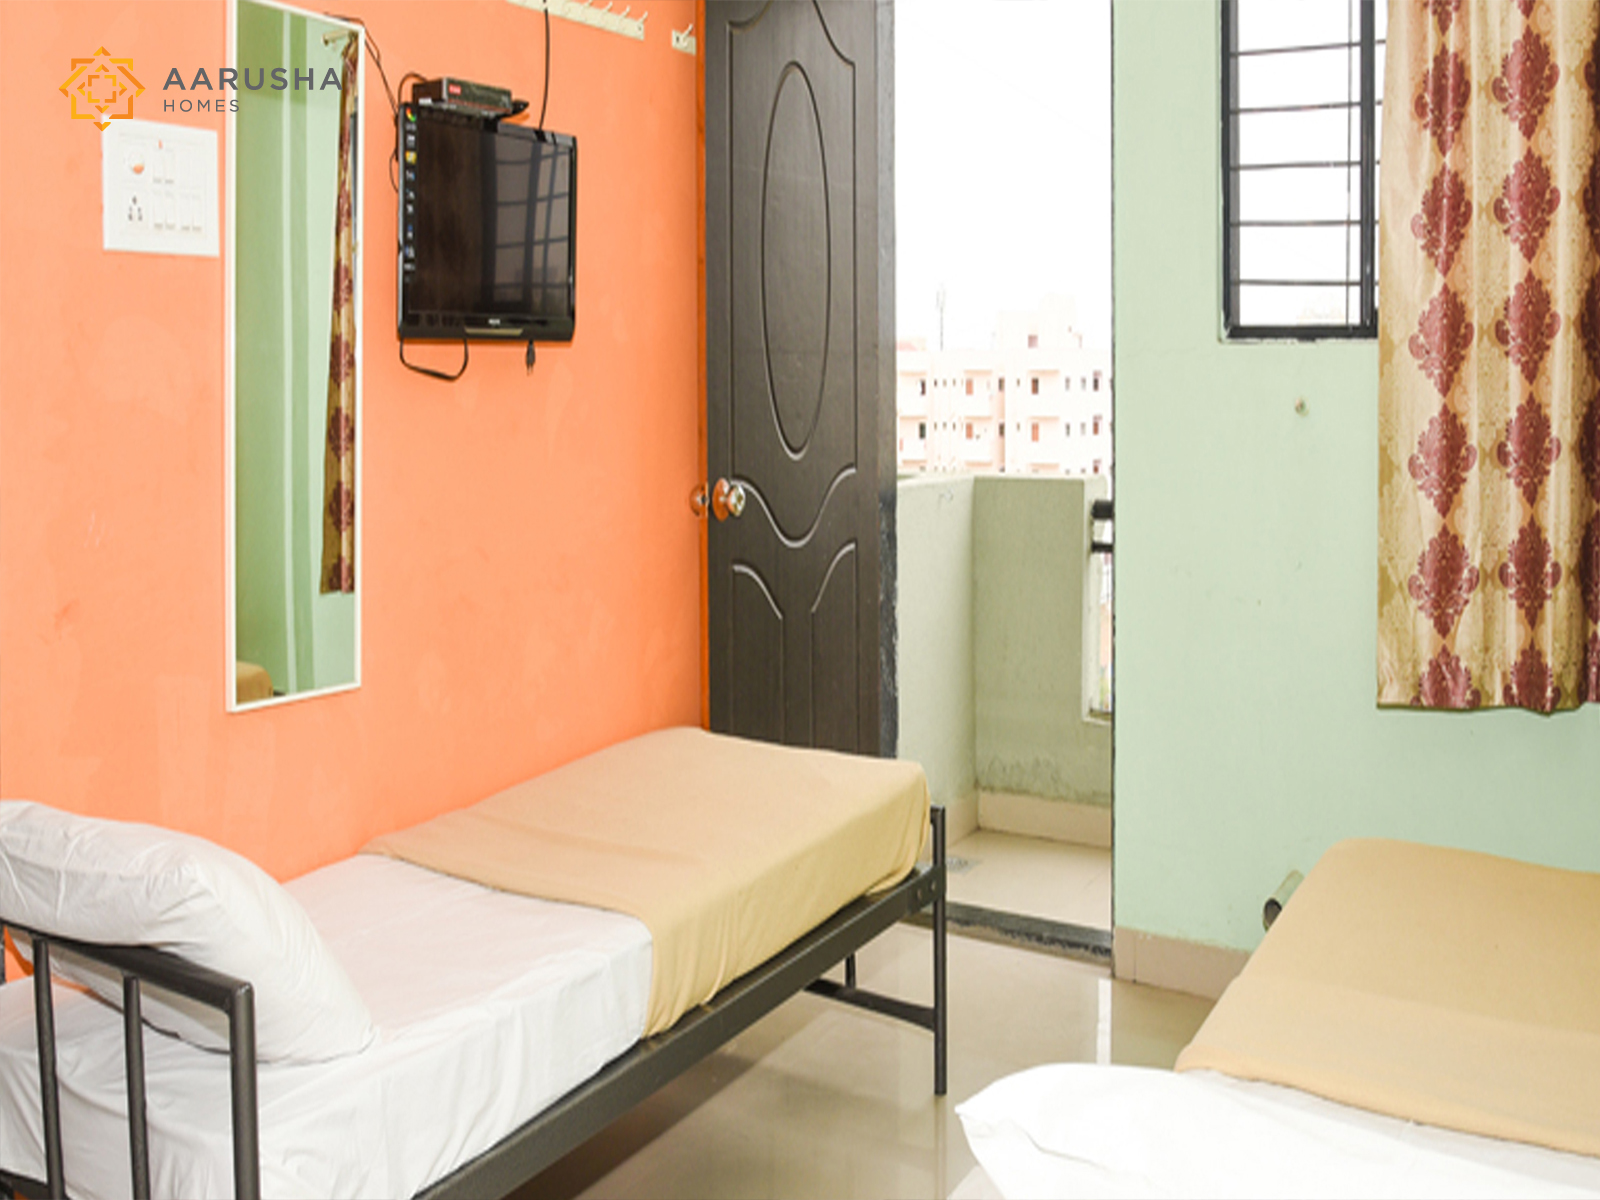 PG & Hostel For Women In Hinjewadi Chowk, Pune